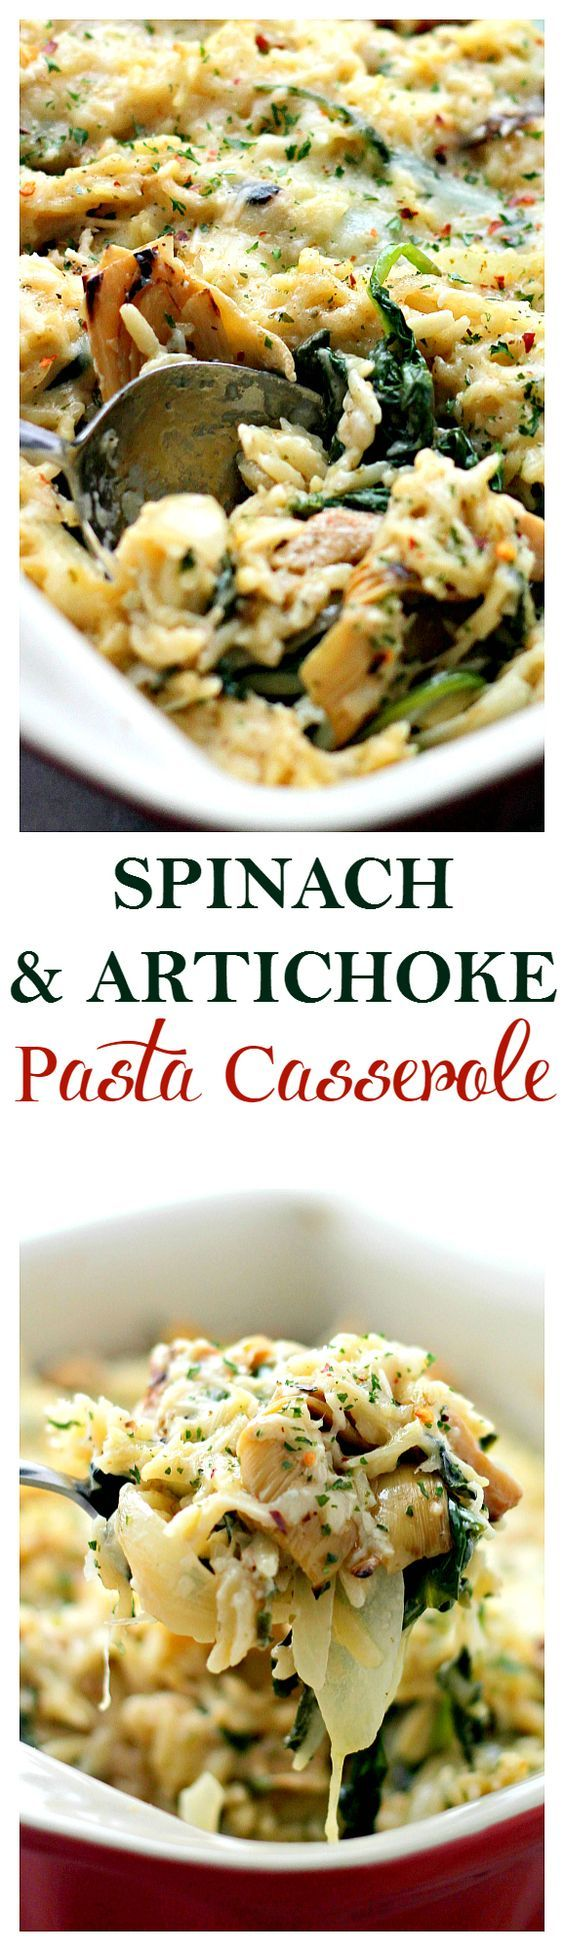 Spinach and Artichoke Pasta Alfredo Casserole – Delicious vegetarian dinner with Spinach Artichokes and Orzo pasta mixed in a lightened-up homemade Alfredo Sauce.